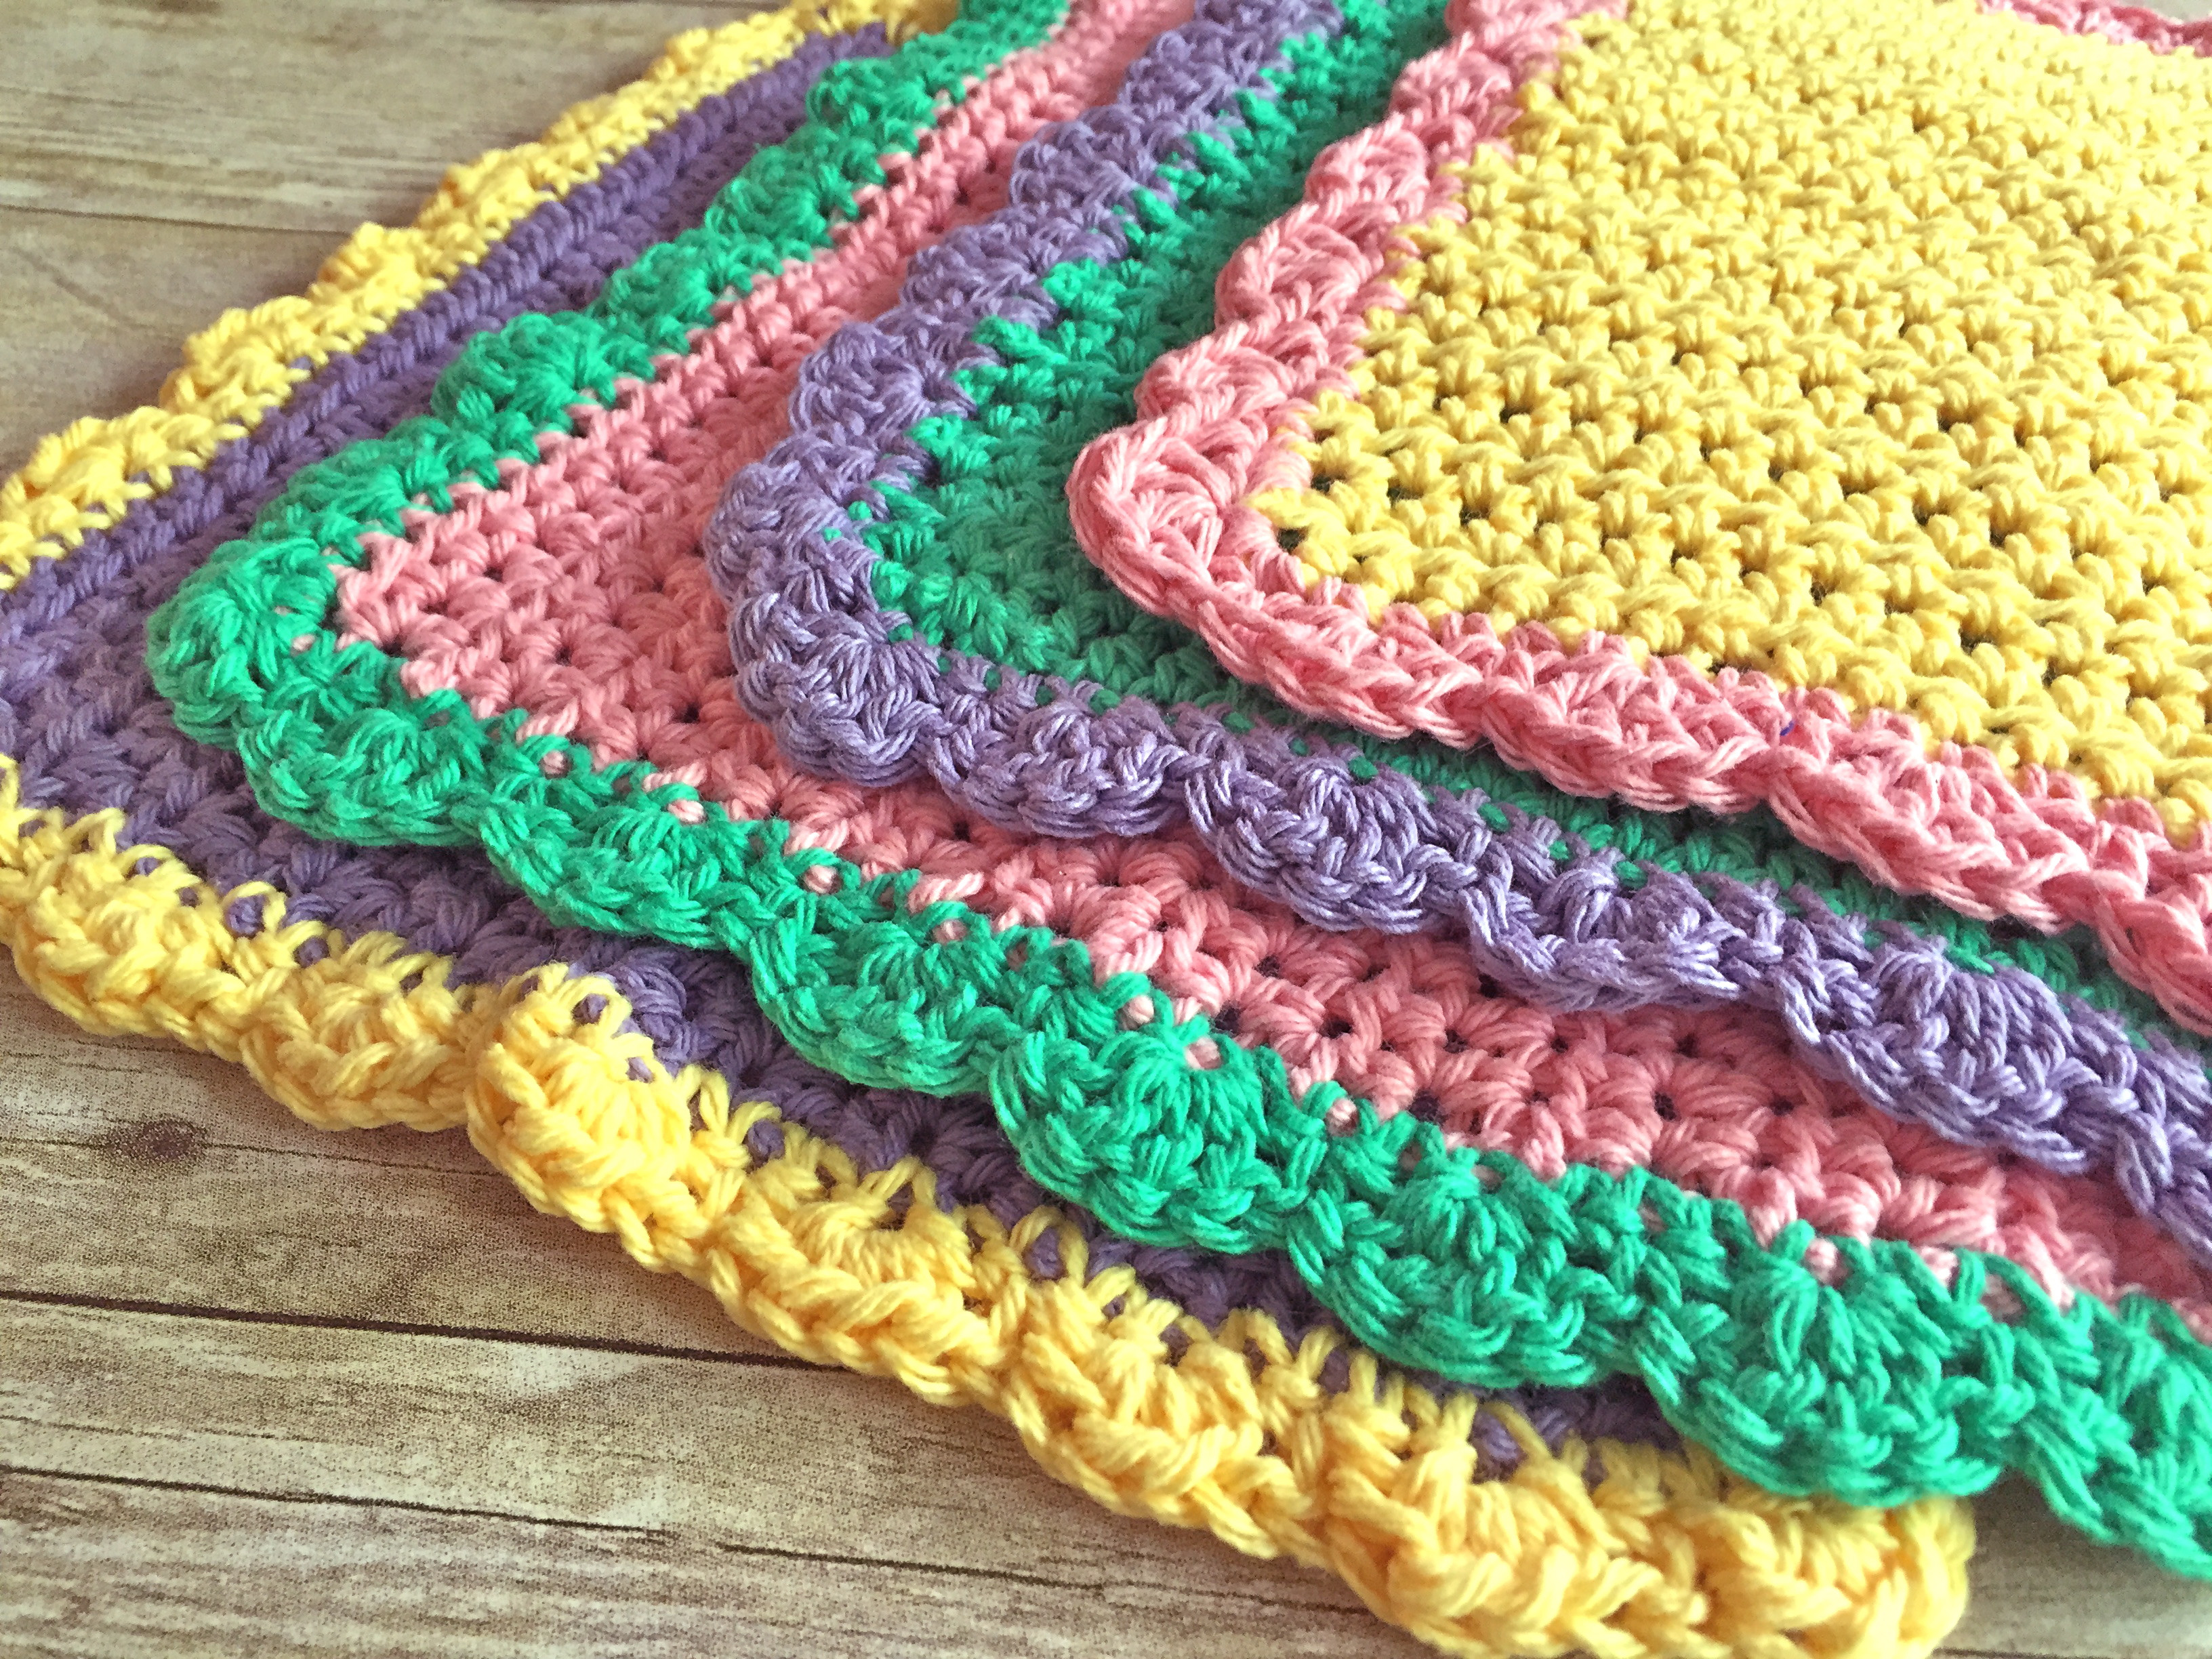 Crochet Dishcloth Pattern Free Easy Dancox for